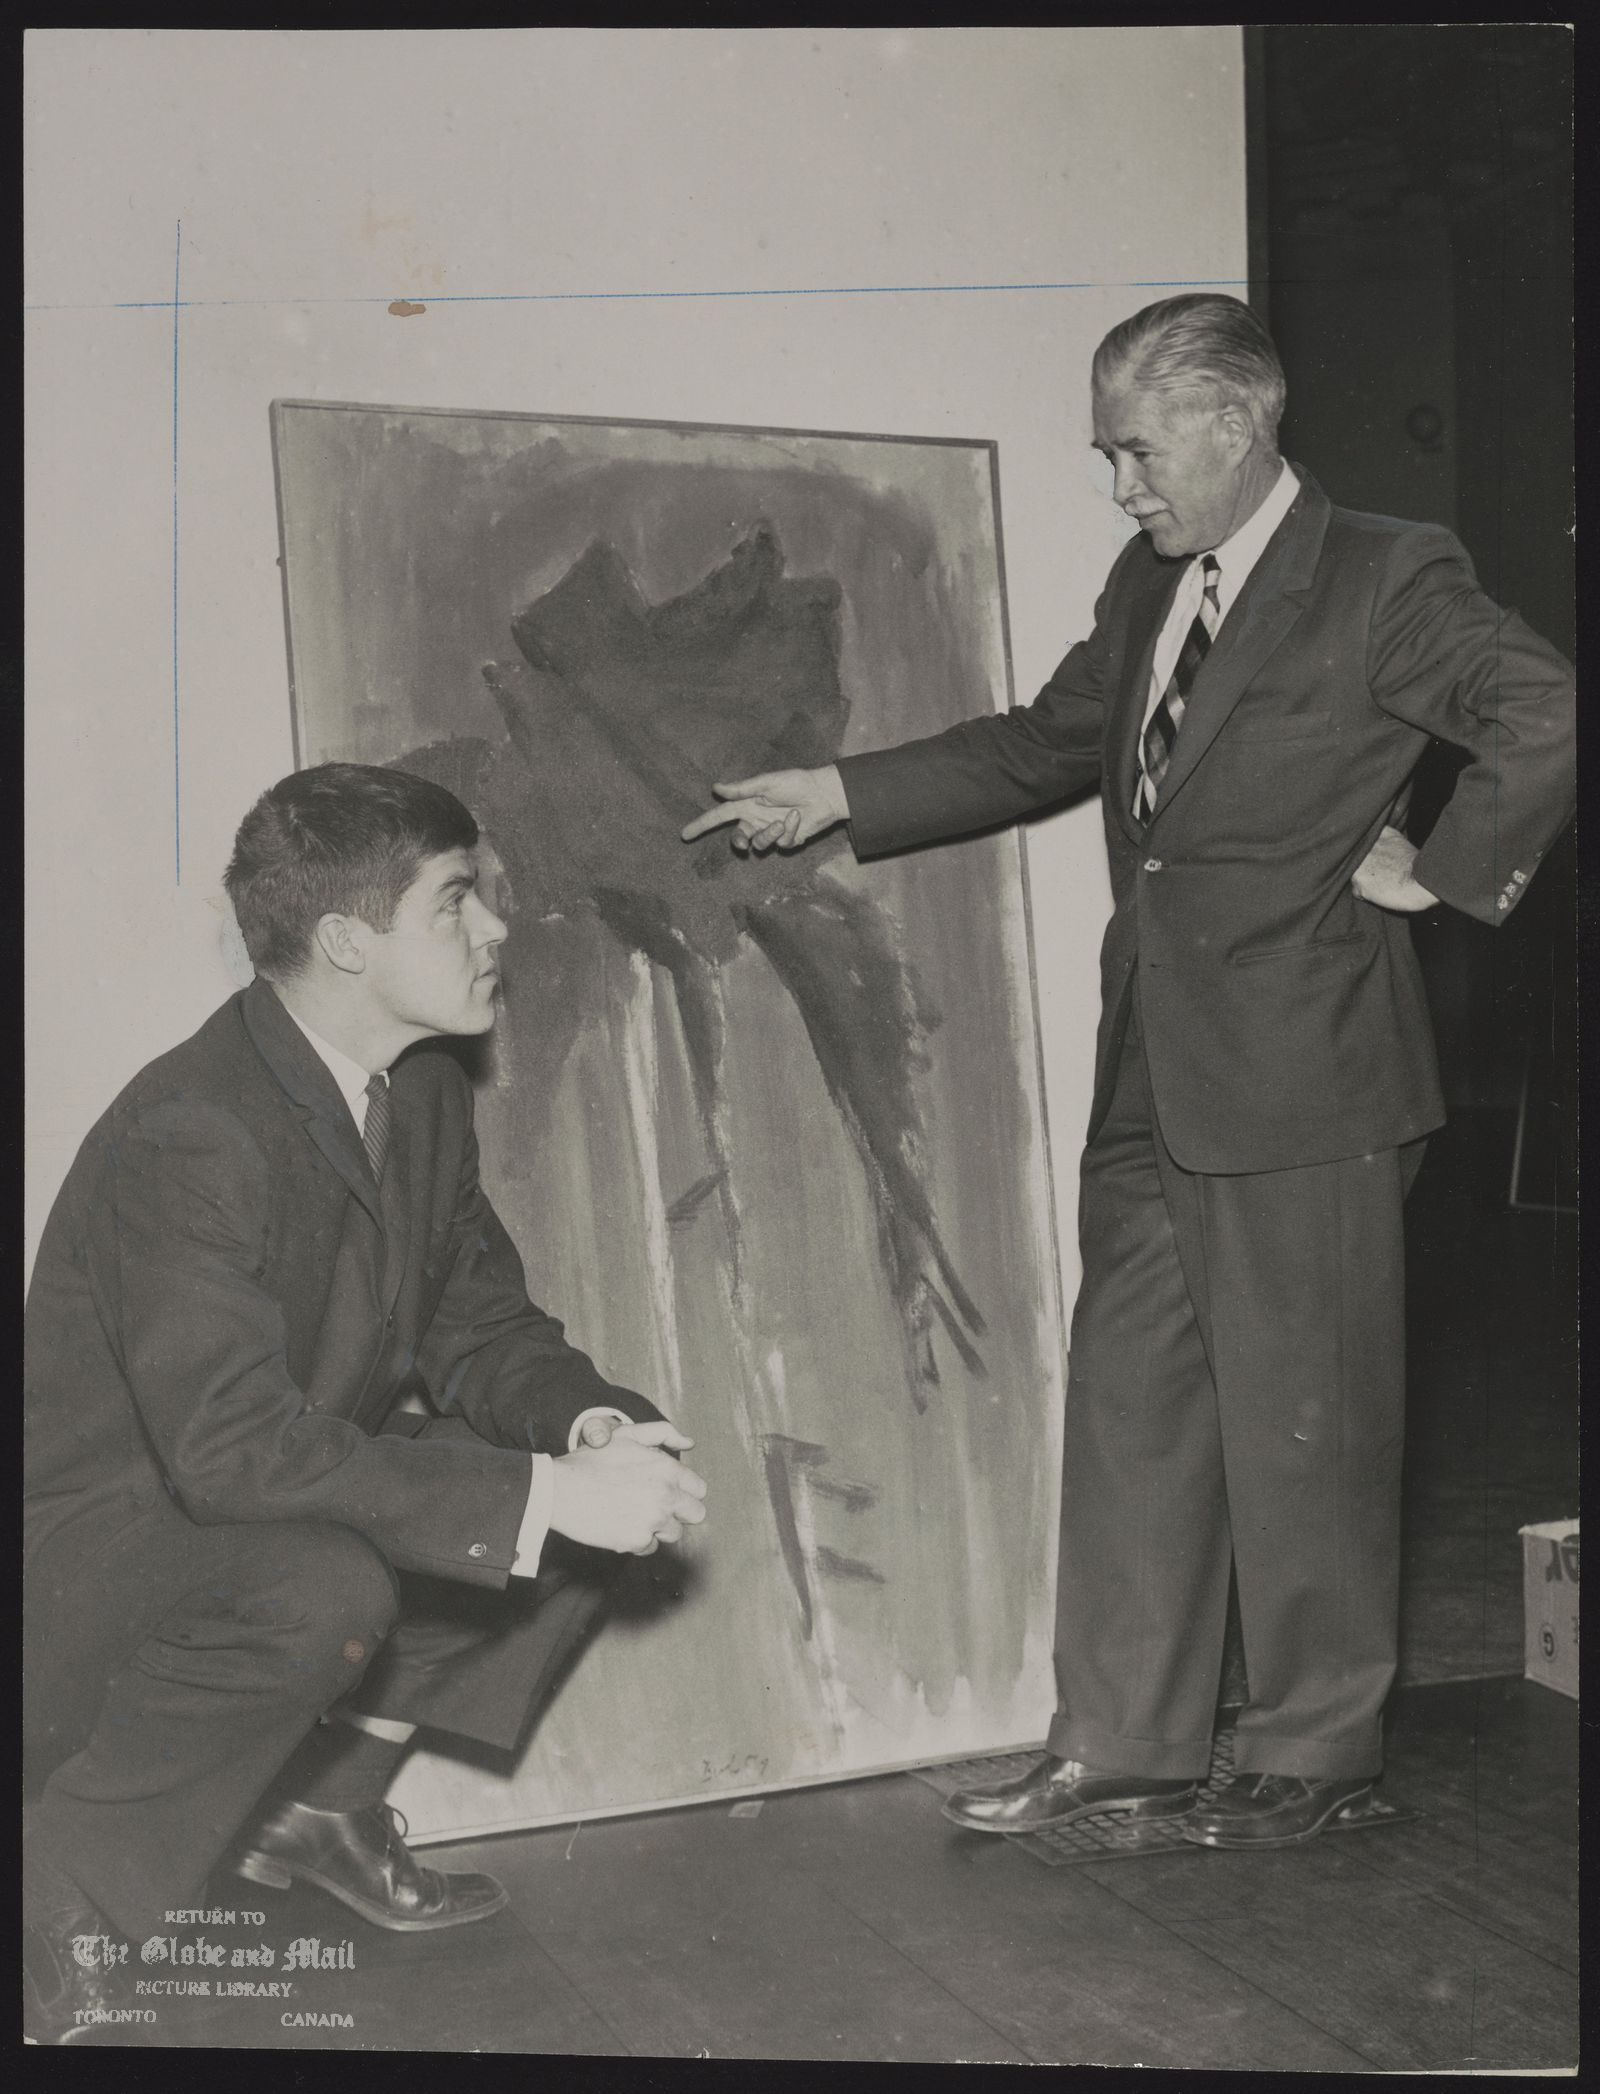 Jack BUSH Artist It's Mighty Lak a Rose, Even When in Abstract Jack Bush (standing) and son Robert view father's study. 'A Rose is a Rose'